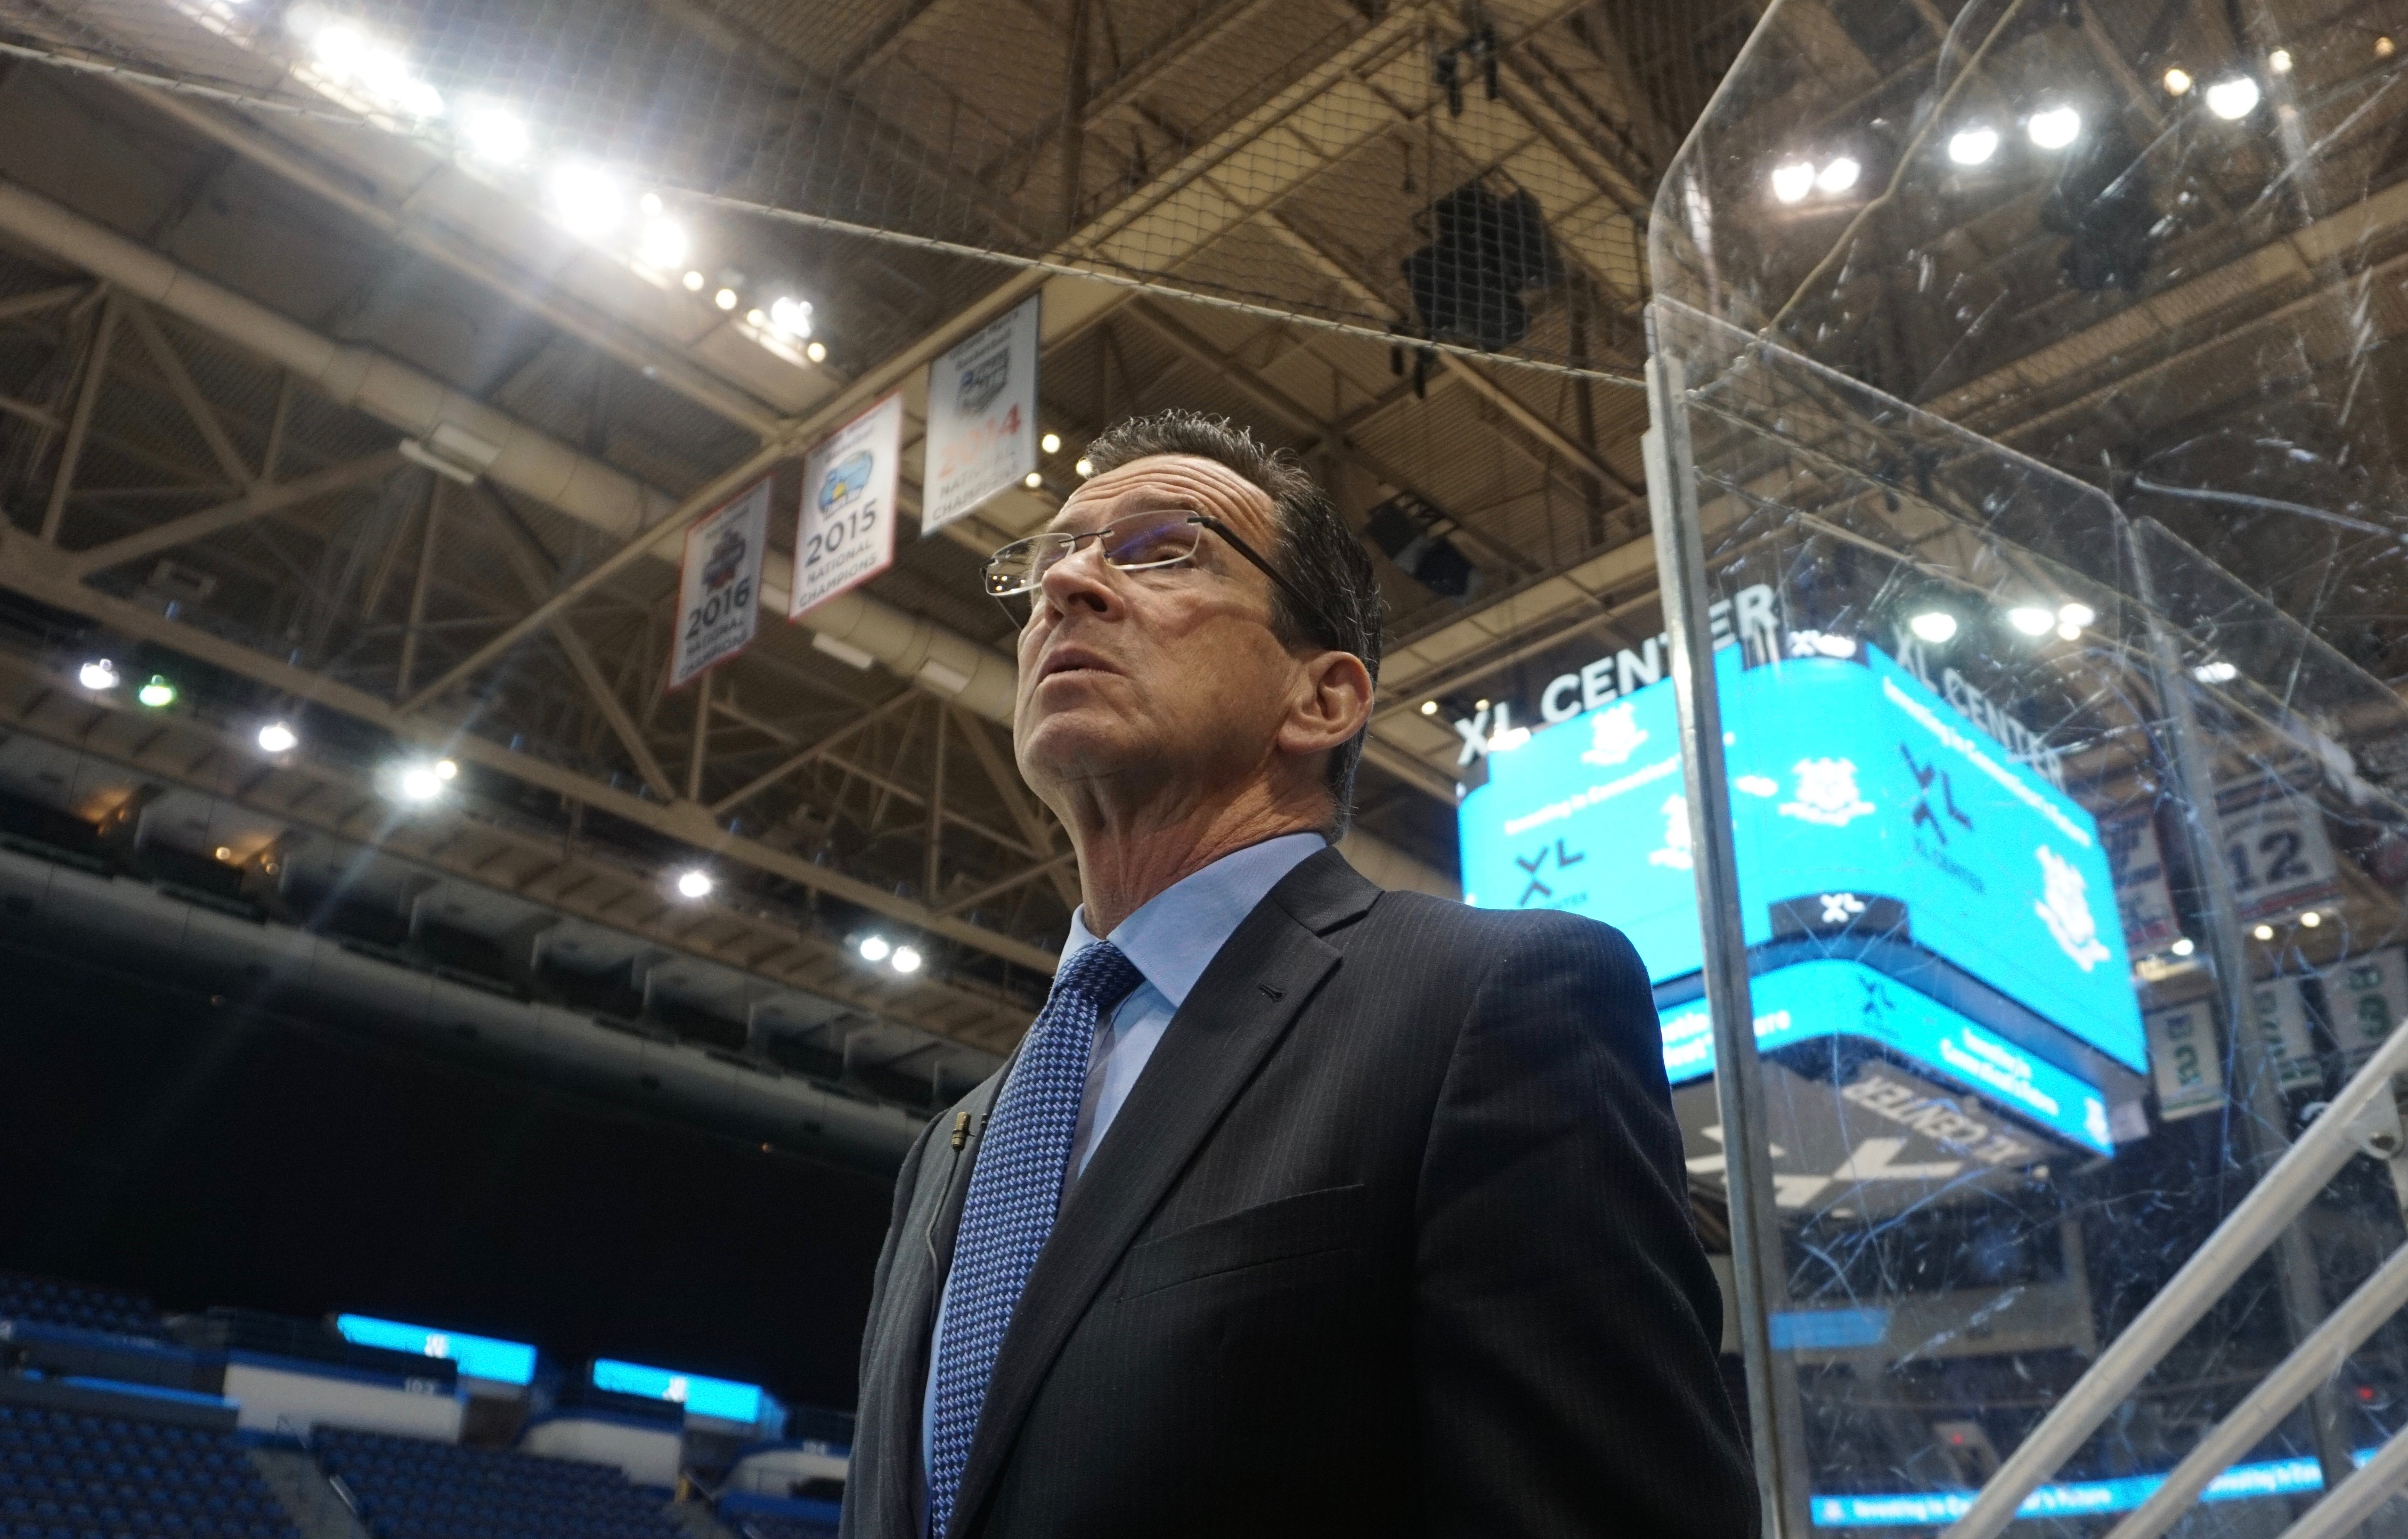 Malloy: Choice is modernize or close aging XL Center